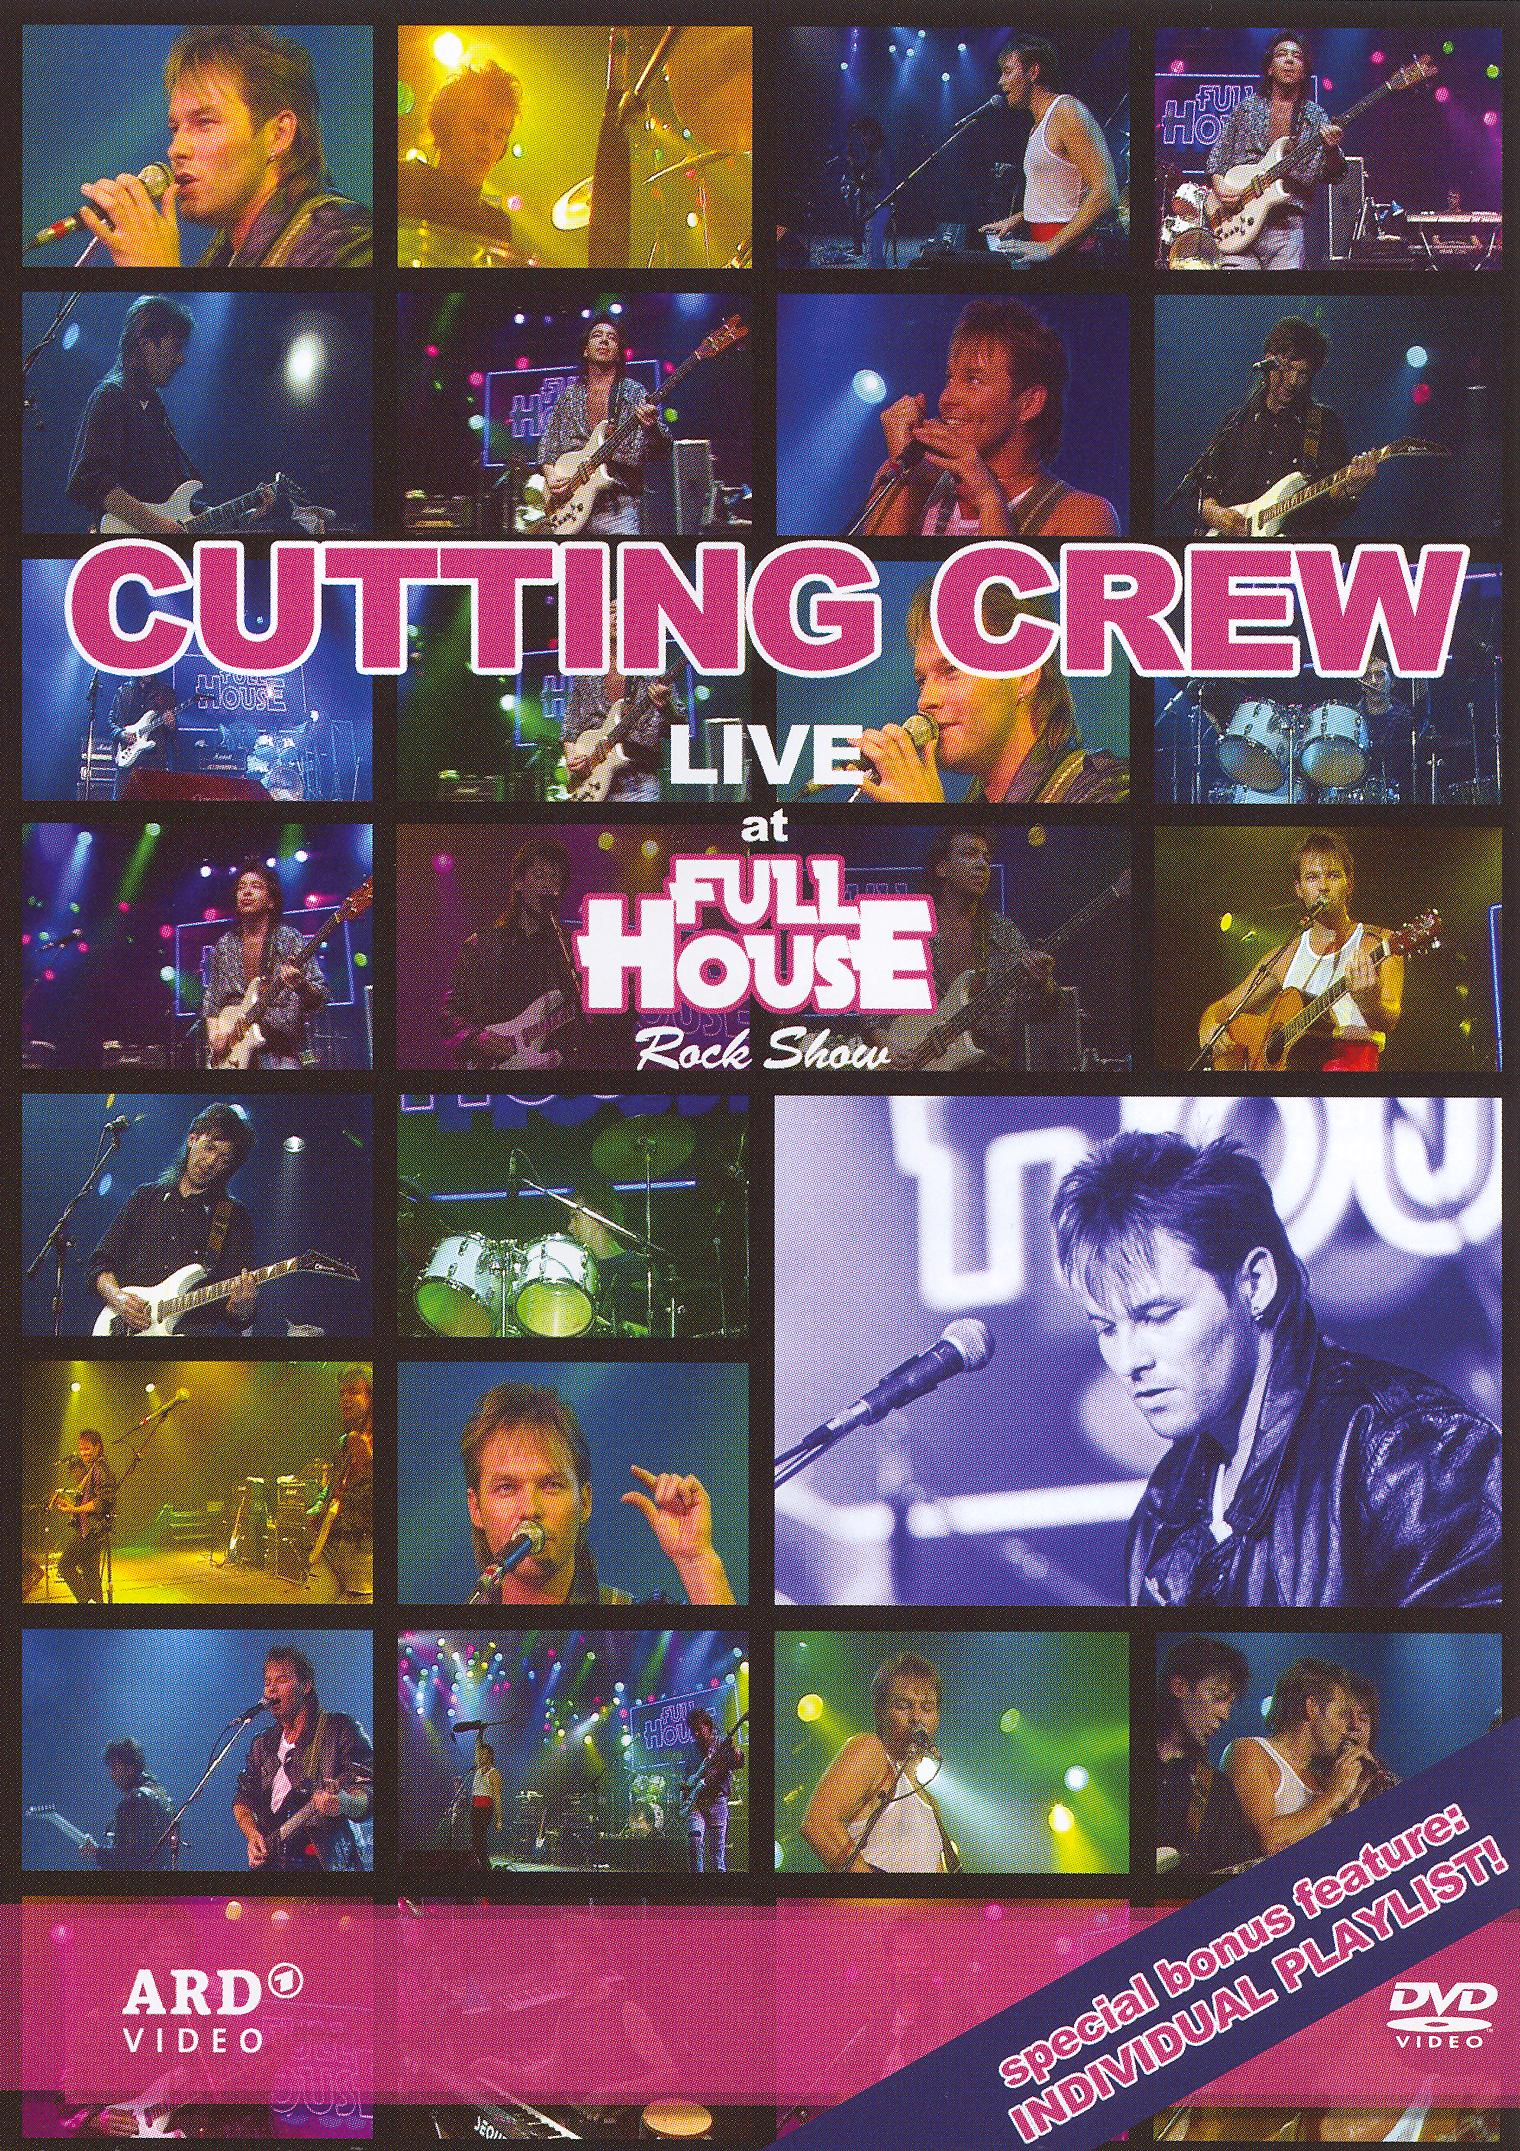 Cutting Crew: Live at Full House